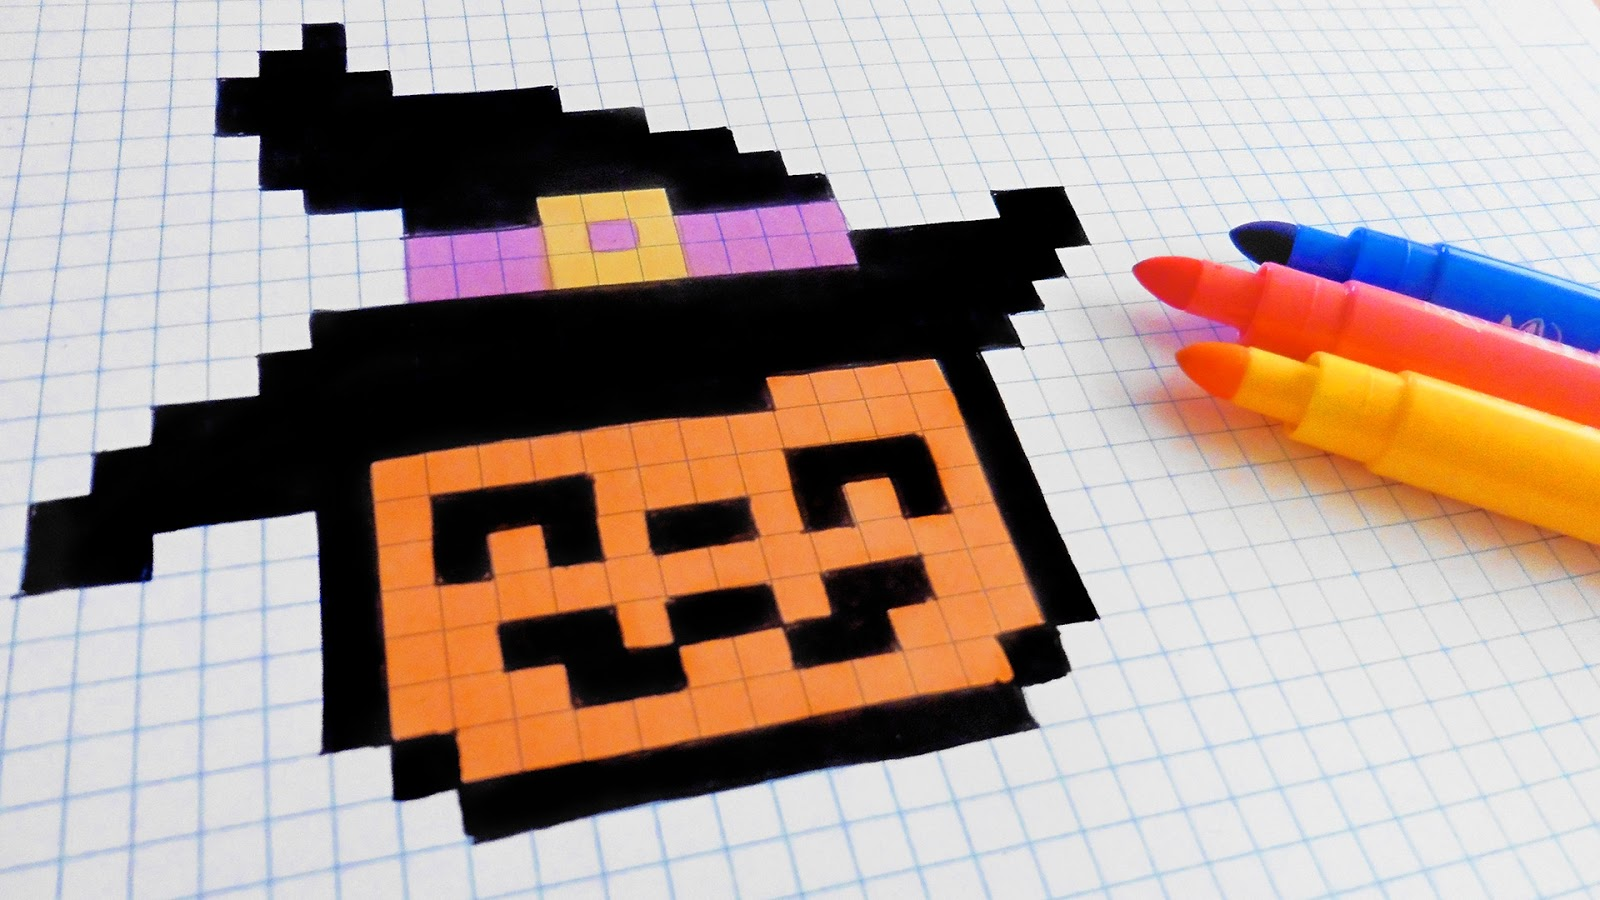 Halloween pixel art how to draw a pumpkinhead pixelart - Comment dessiner un monstre qui fait peur ...